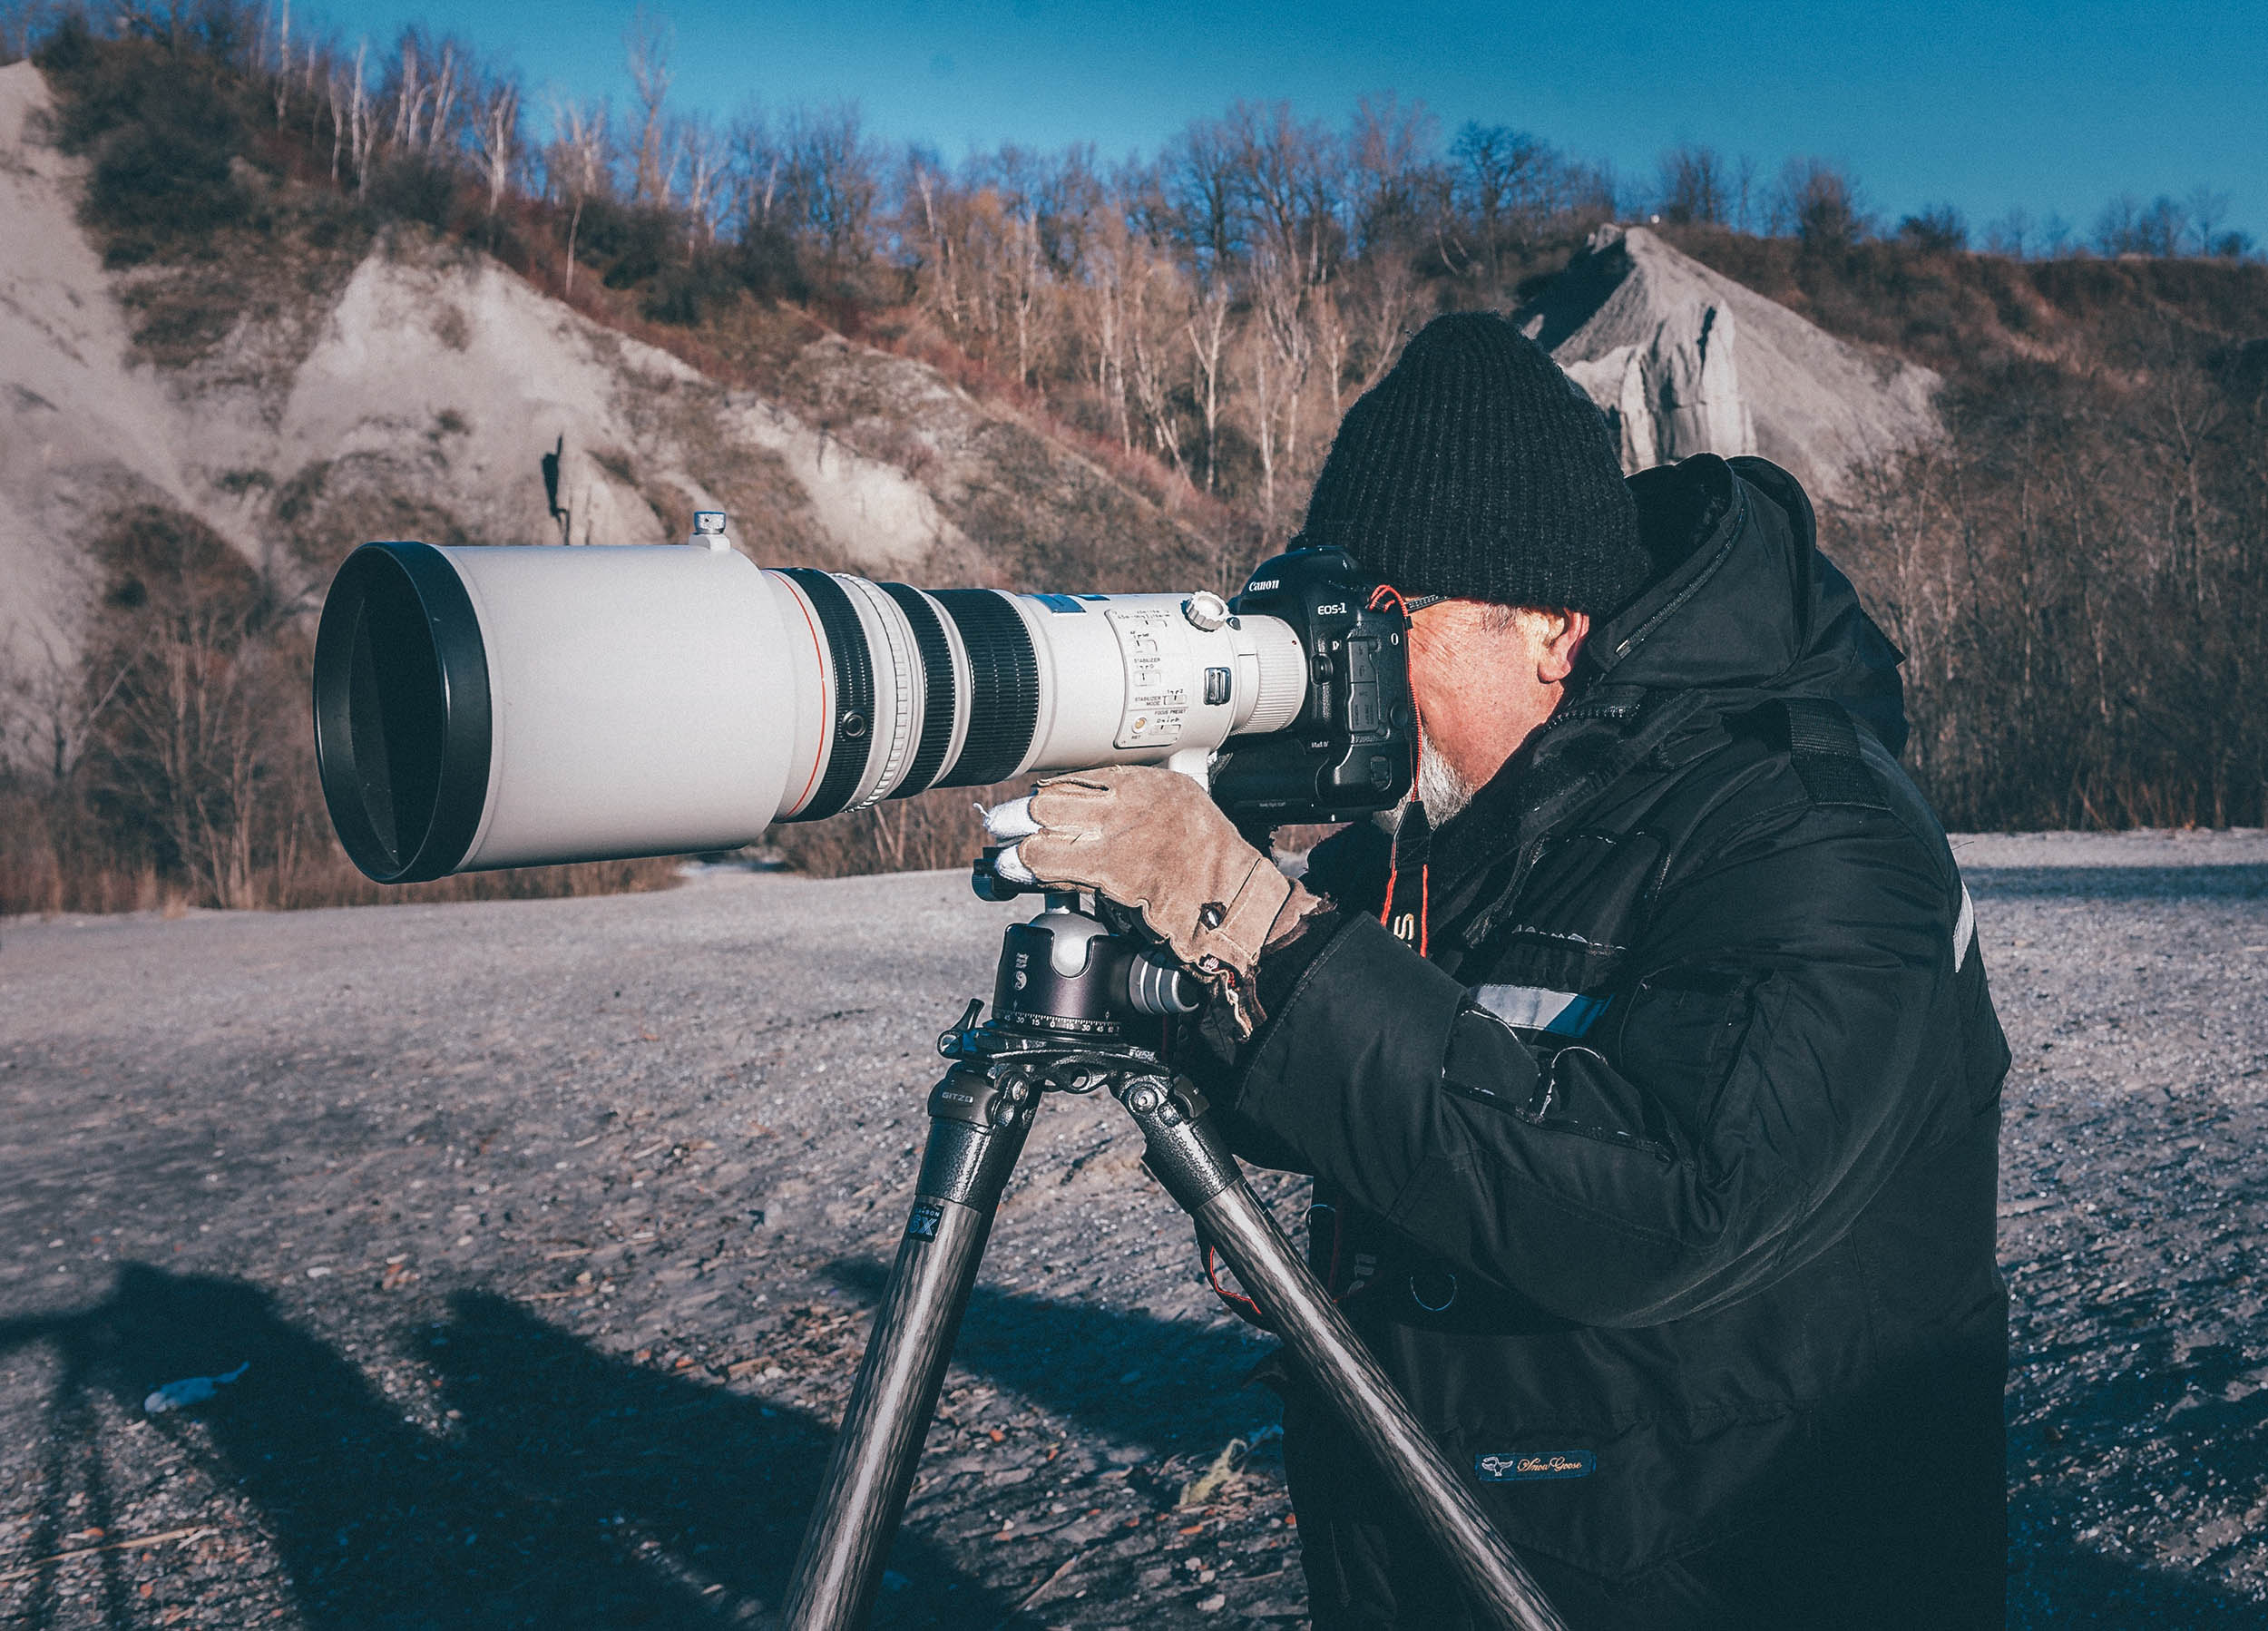 tripod telelense Basics of photography Photographing animals in the wild